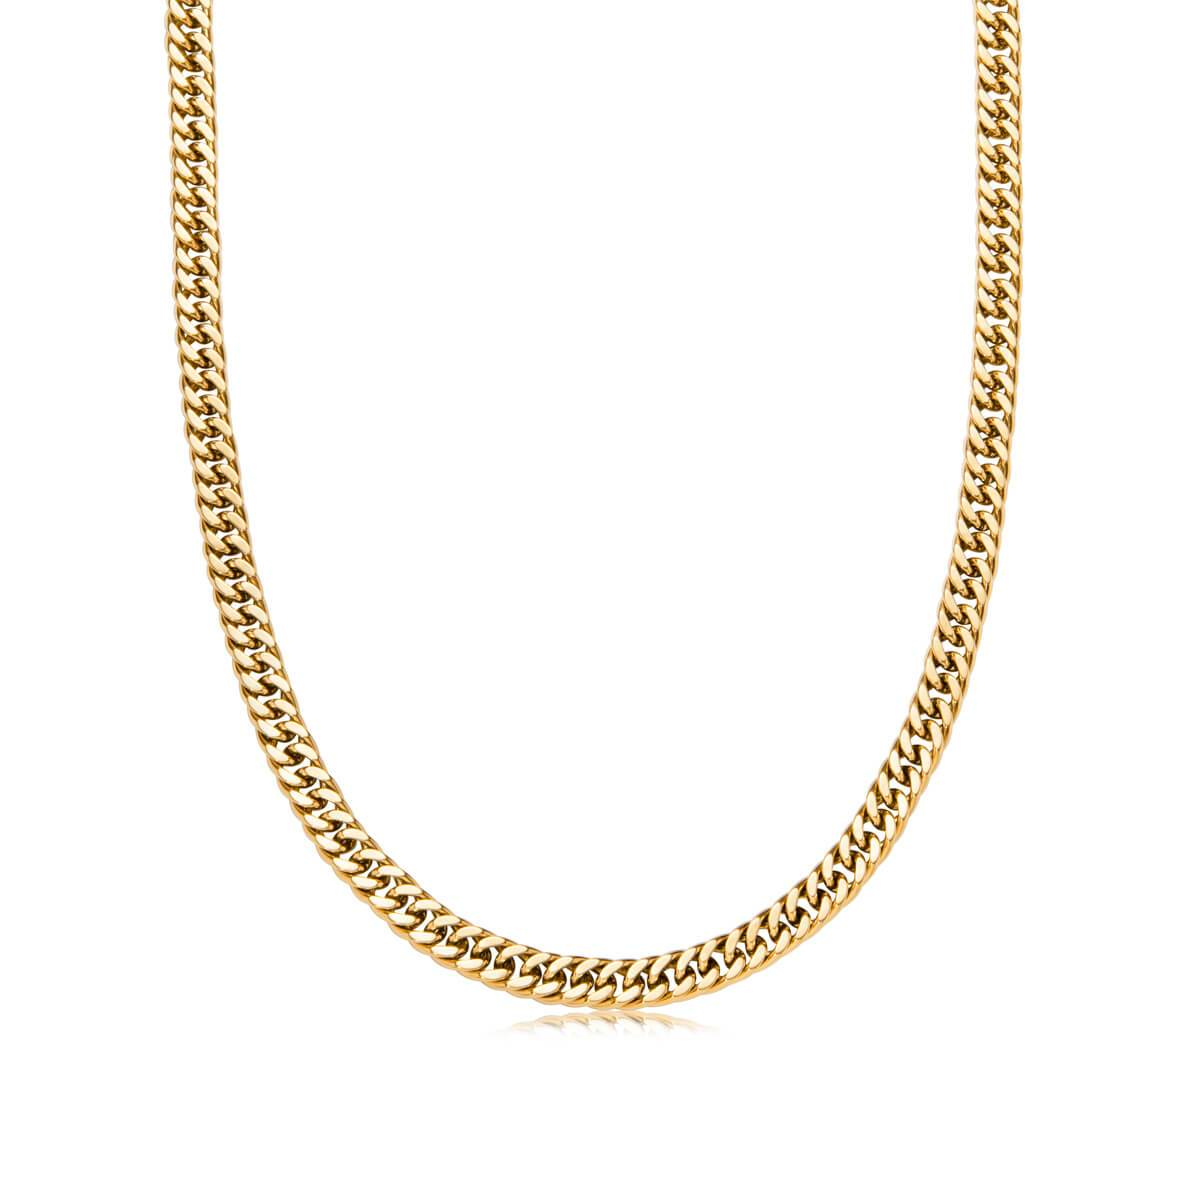 Curb Chain Necklace 16 in (Gold)